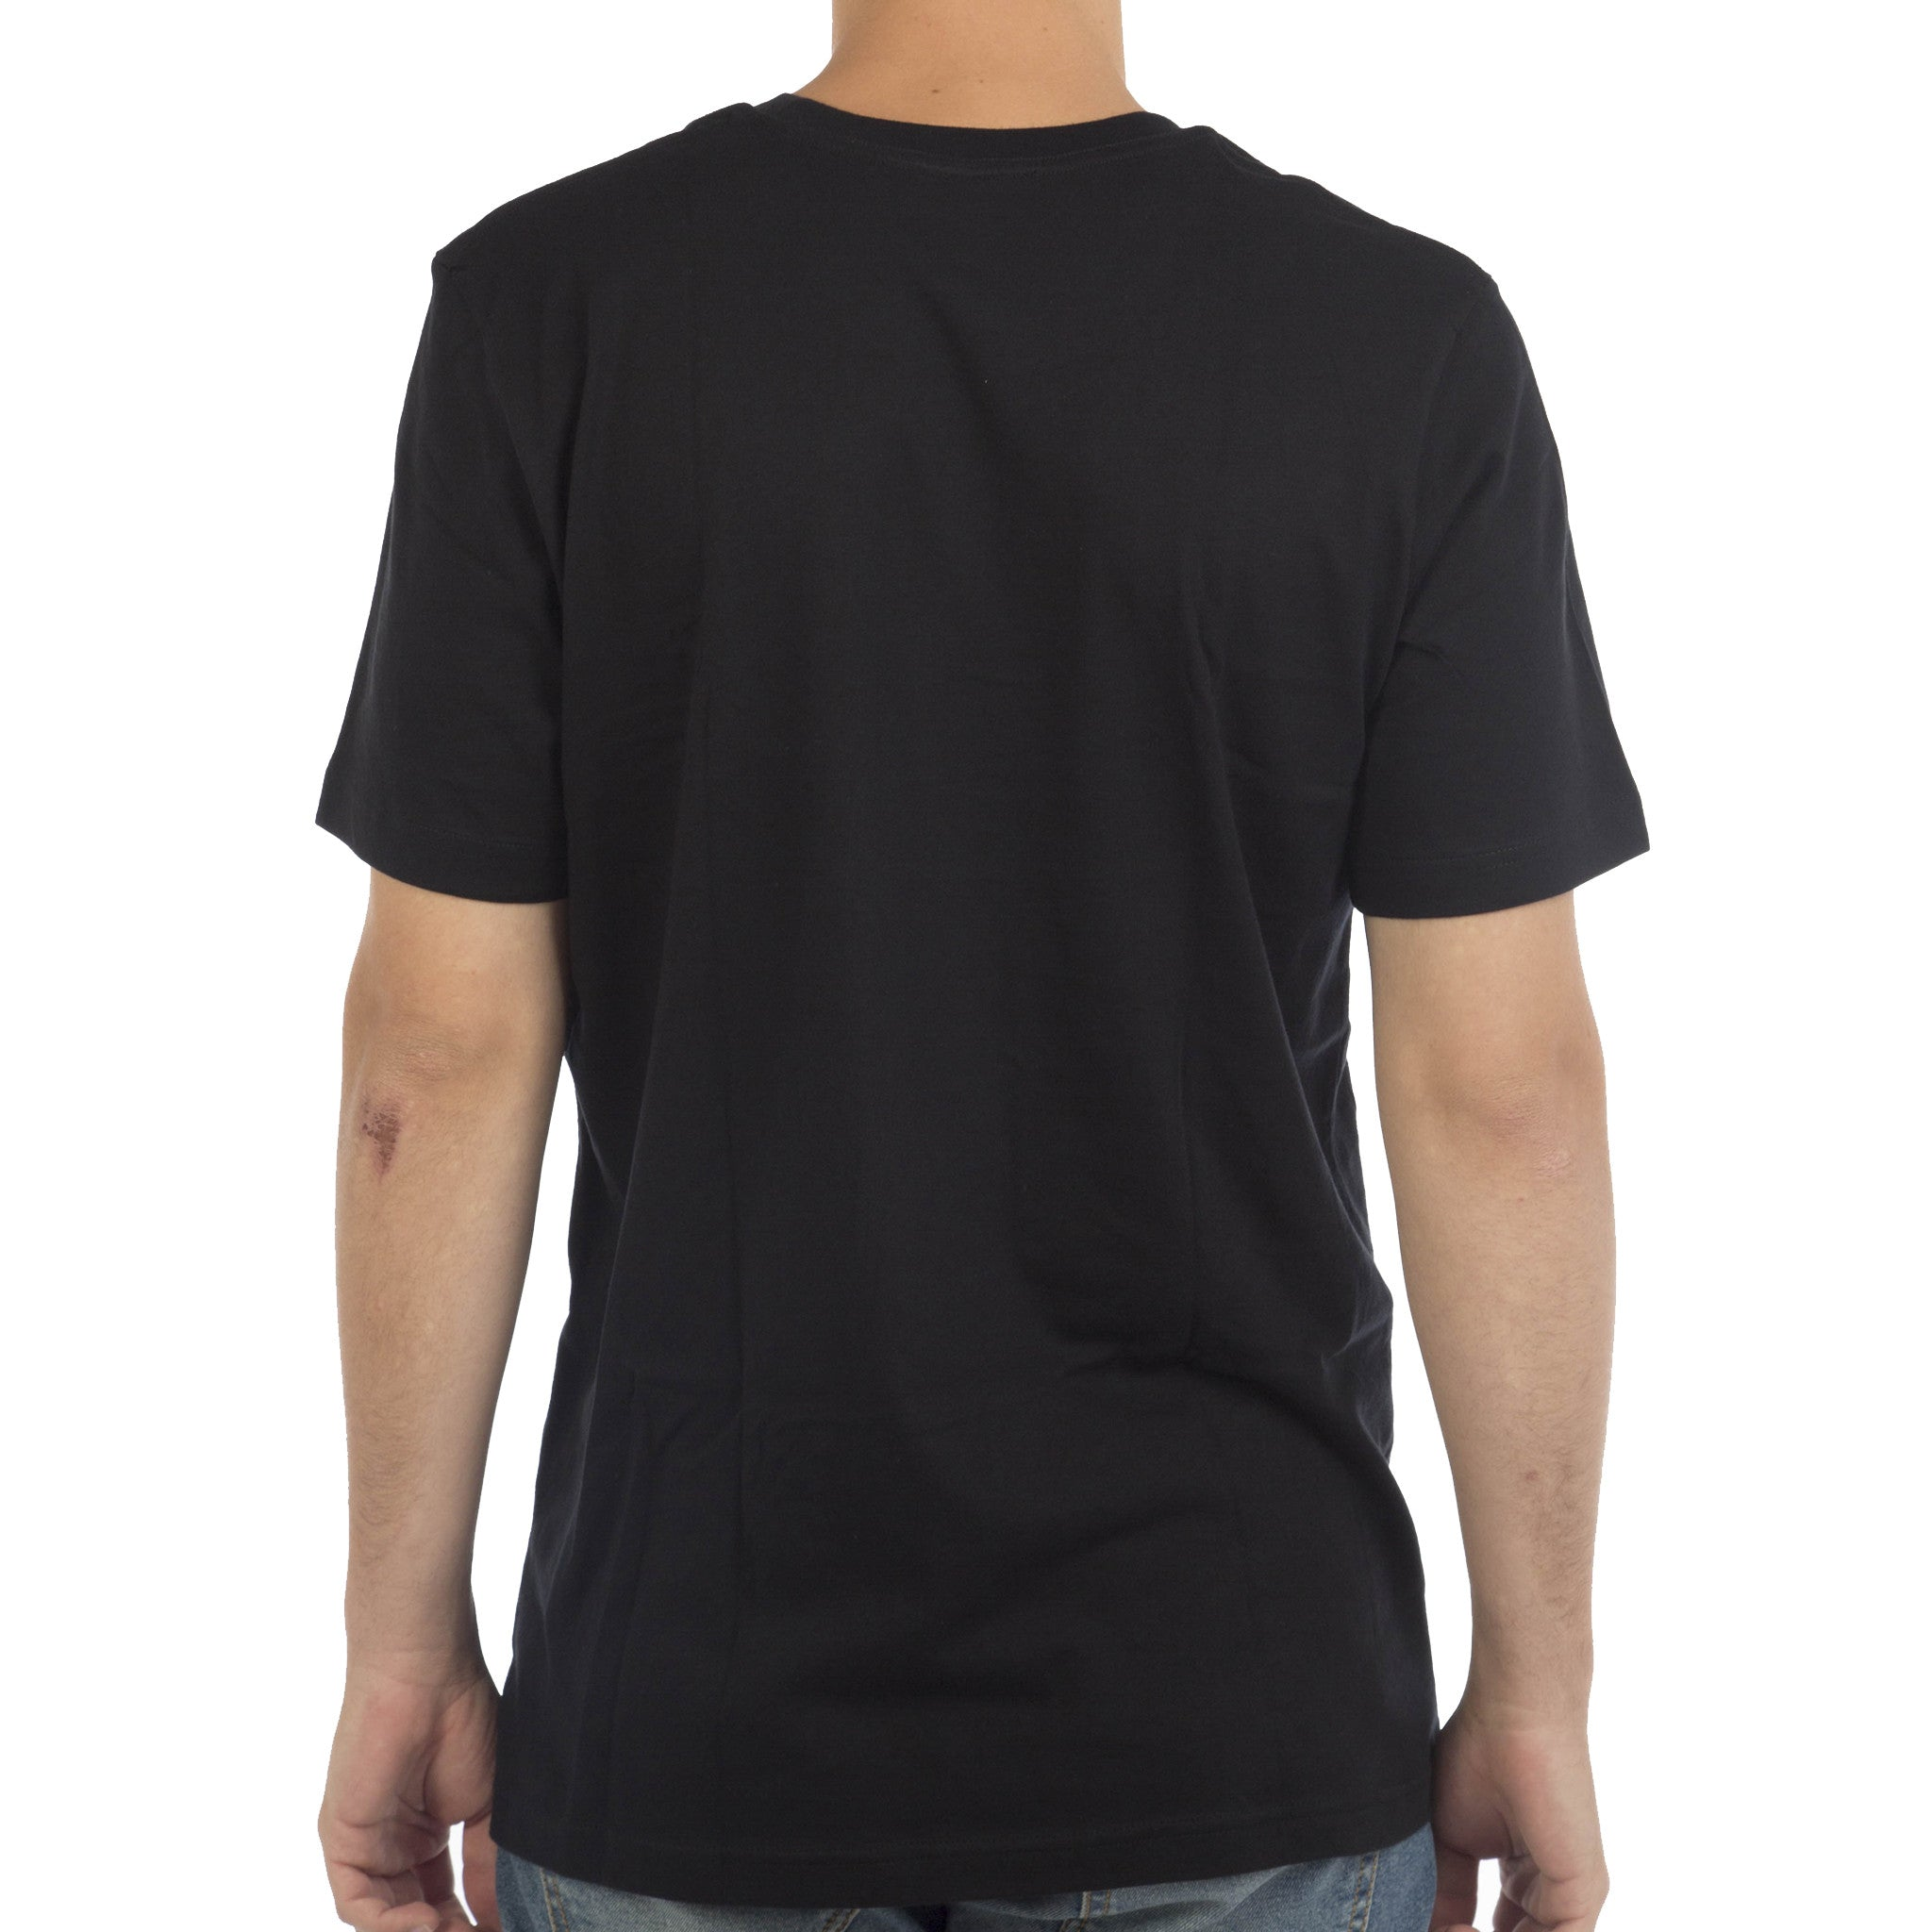 Supereroe - T-Shirt Uomo Promo - T-Shirt by Fol The Brand